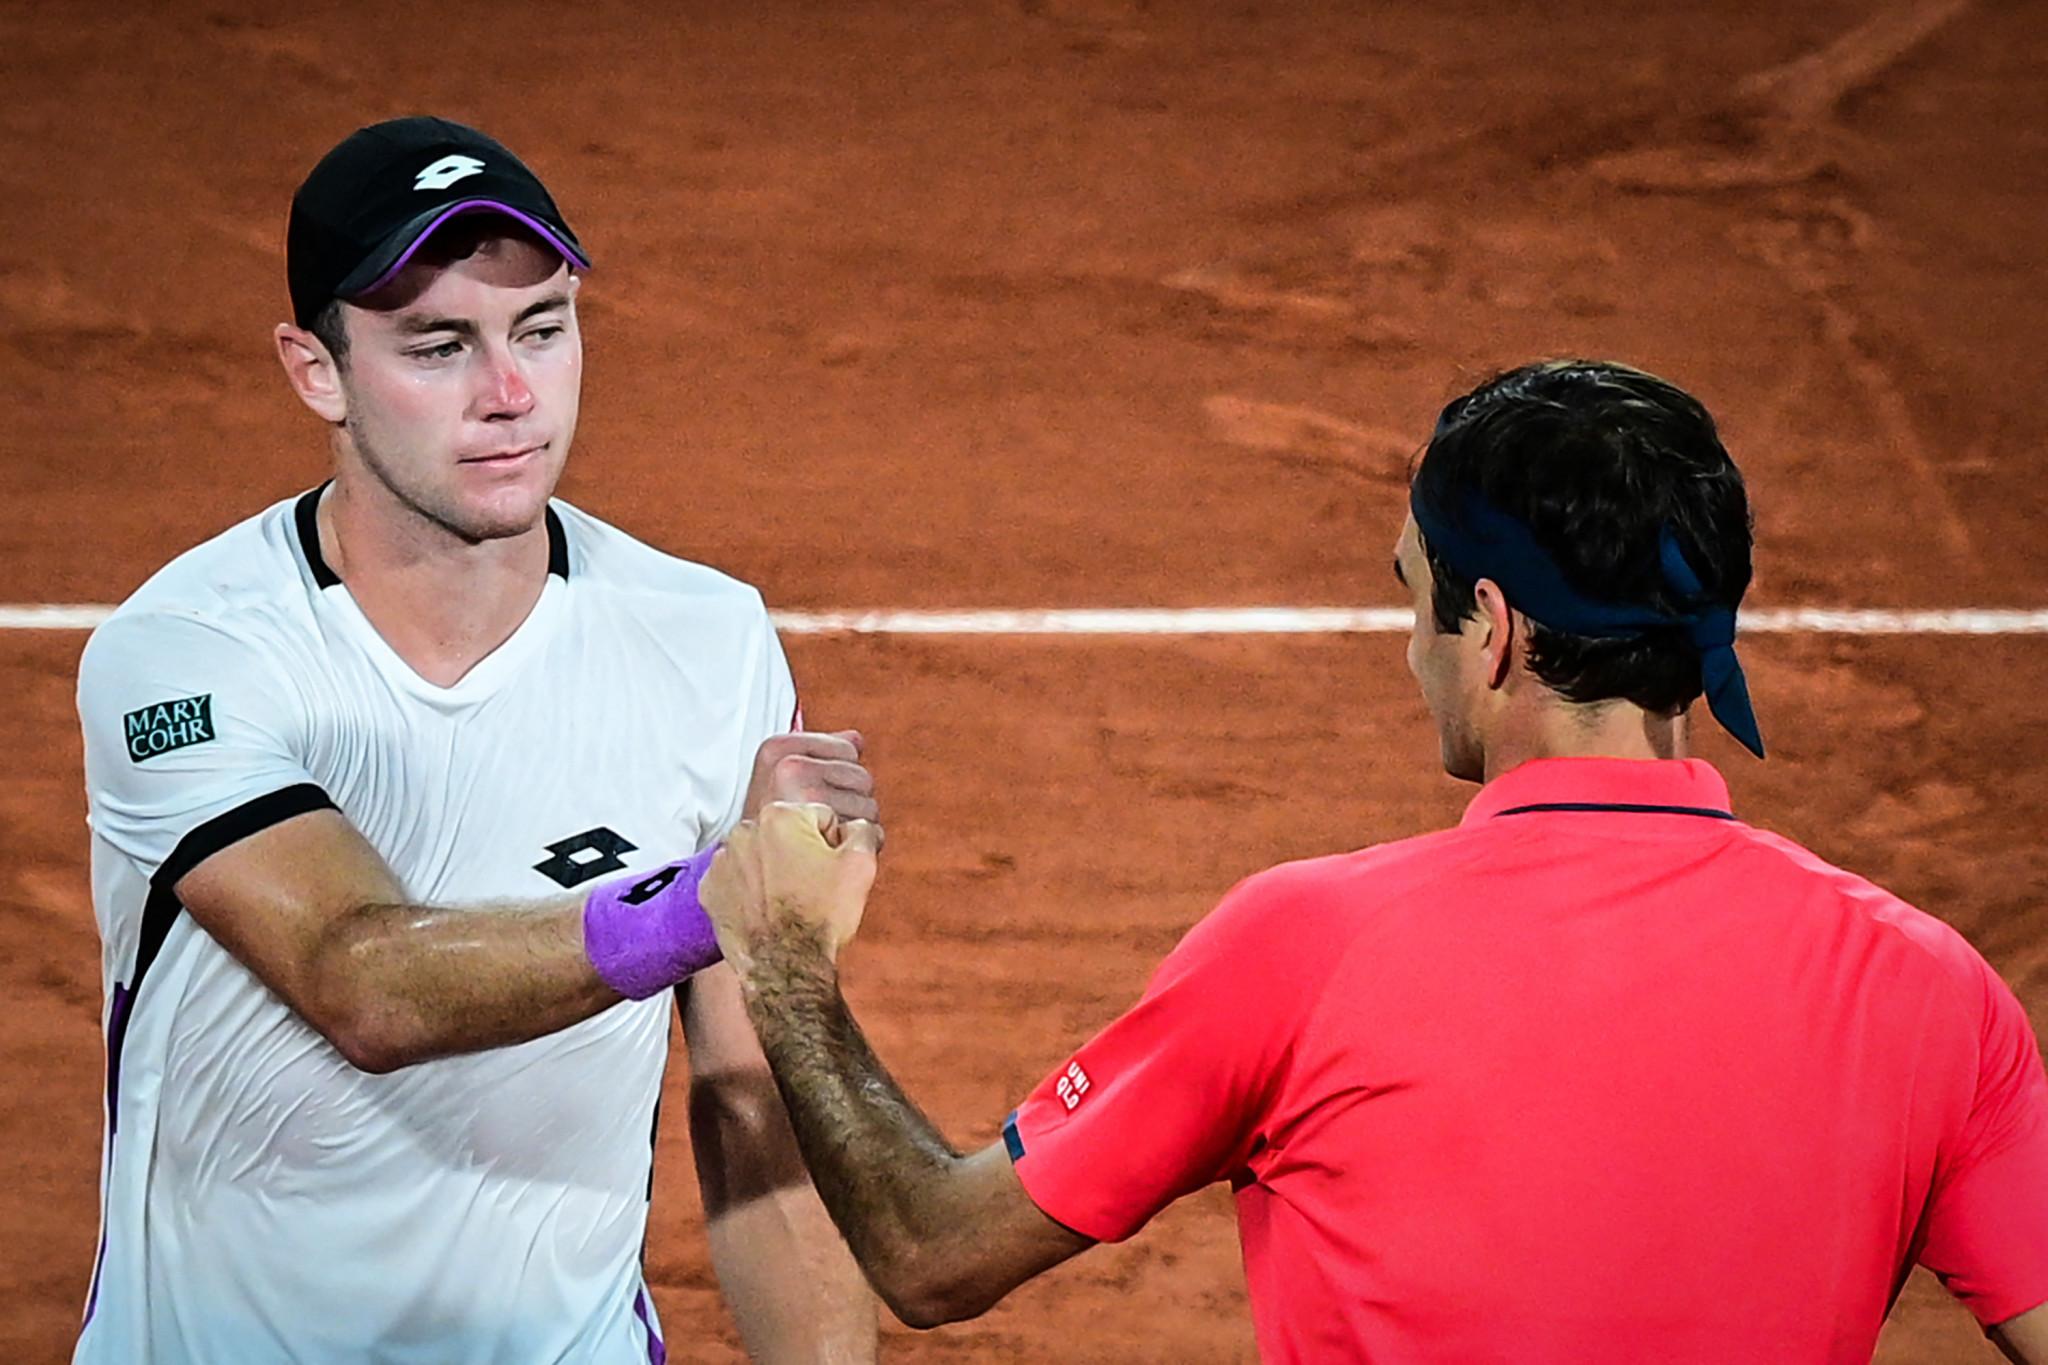 Roger Federer and Dominik Koepfer bump fists after the net after their marathon late-night encounter, which saw the Swiss player prevail in four sets at 12.45am local time  ©Getty Images